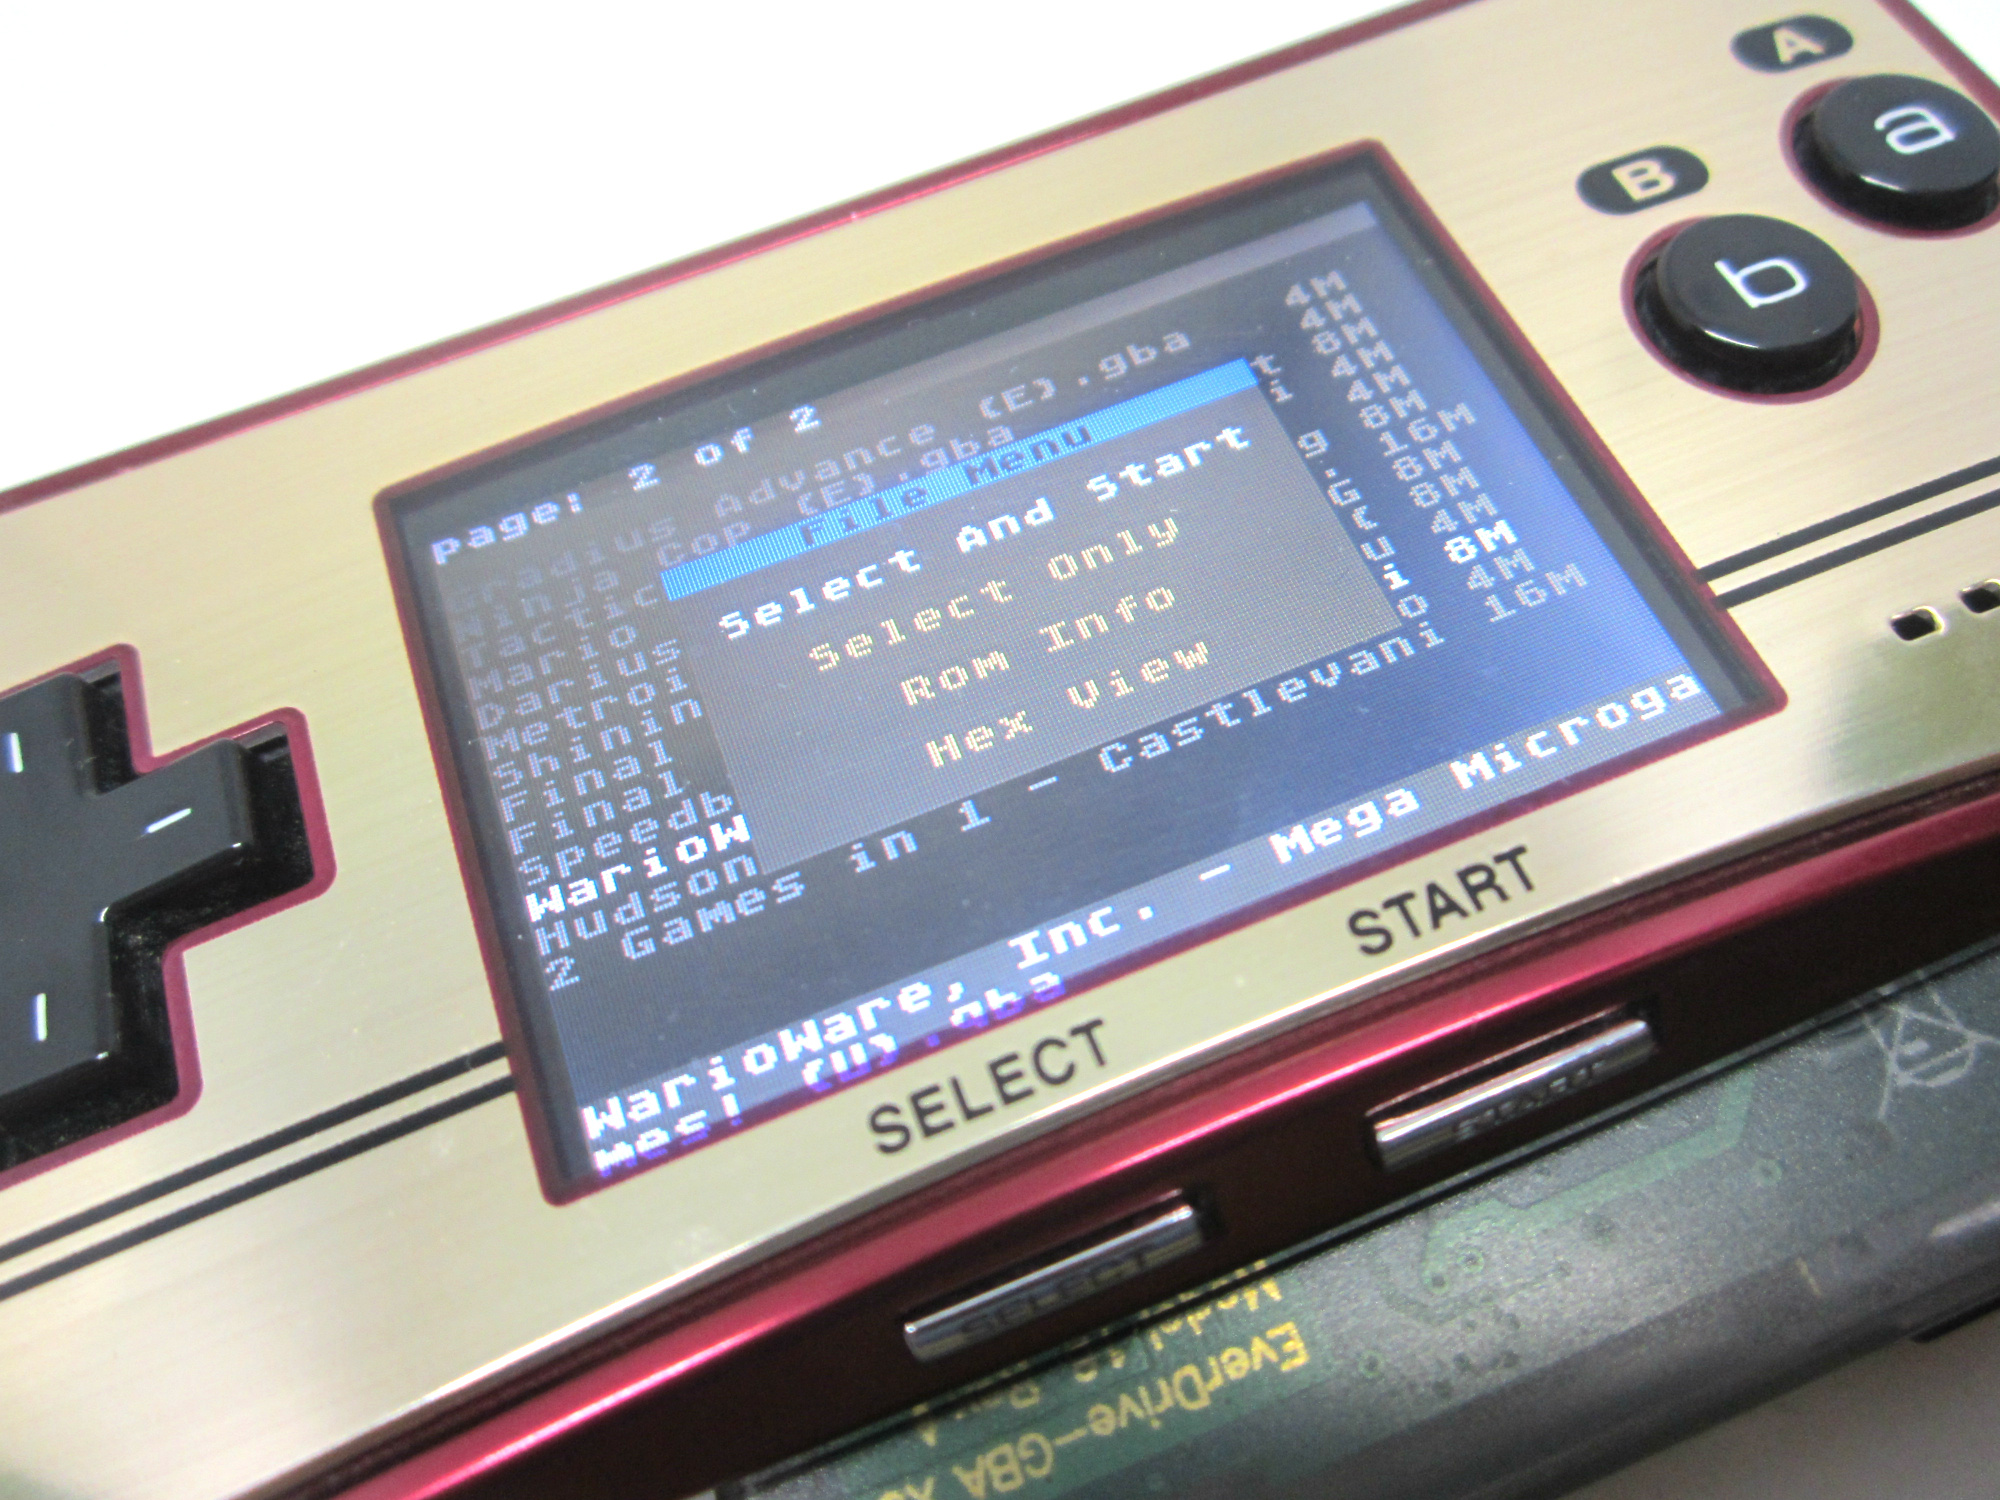 Game boy color everdrive - Like Krikzz S Other Flash Carts The Everdrive Gba X5 Isn T Cheap You Can Expect To Part With Almost 100 To Own One But It Should Be Remembered That